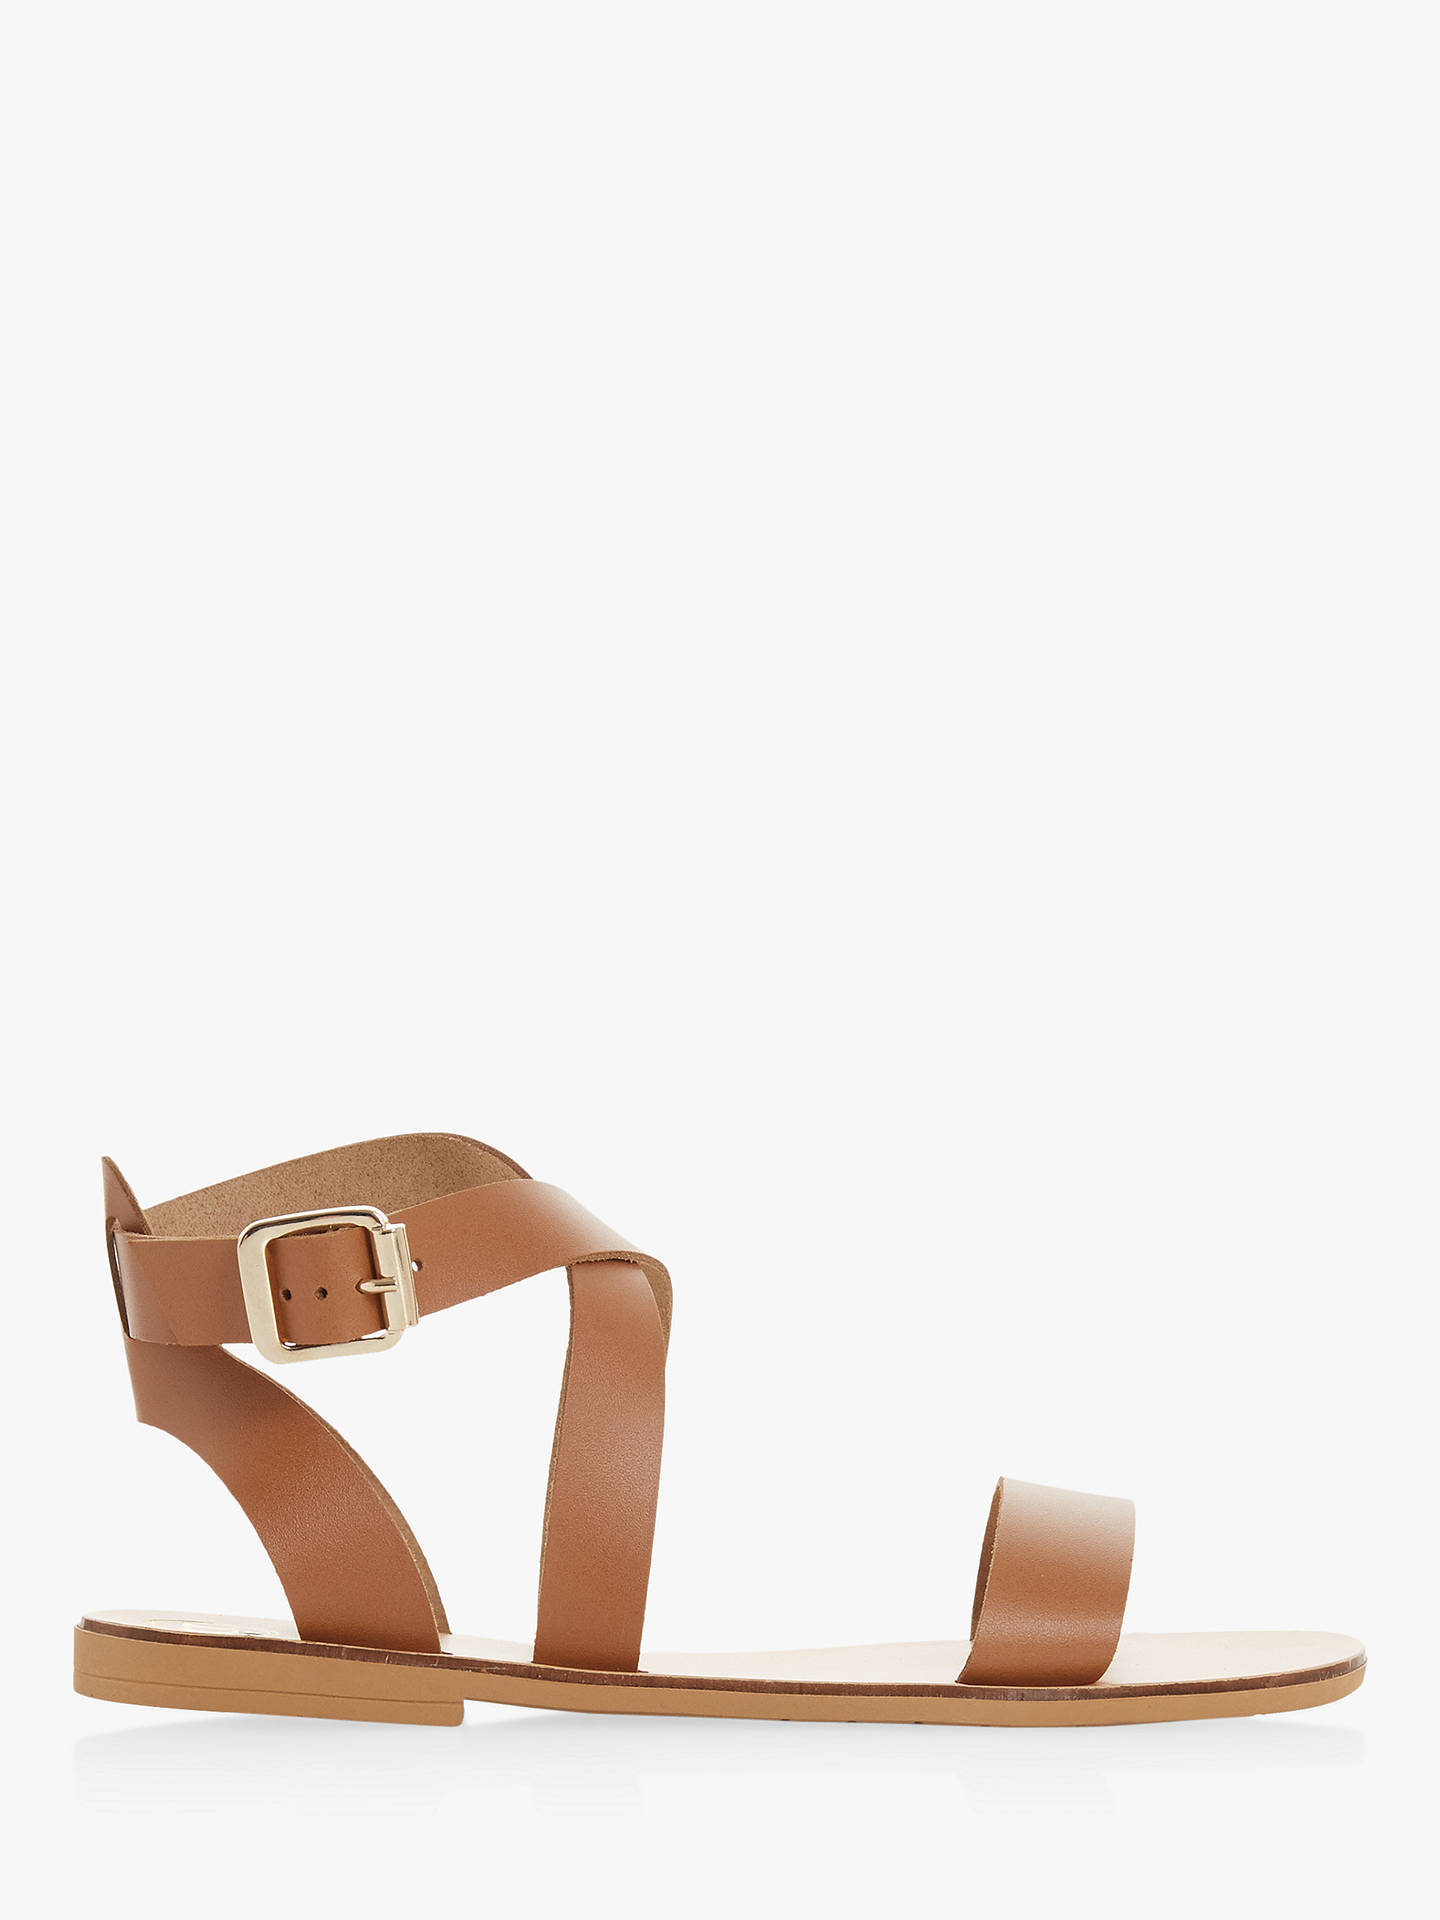 3b56ae4e3d90a Buy Dune Lottiie Leather Cross Strap Sandals, Tan, 3 Online at  johnlewis.com ...